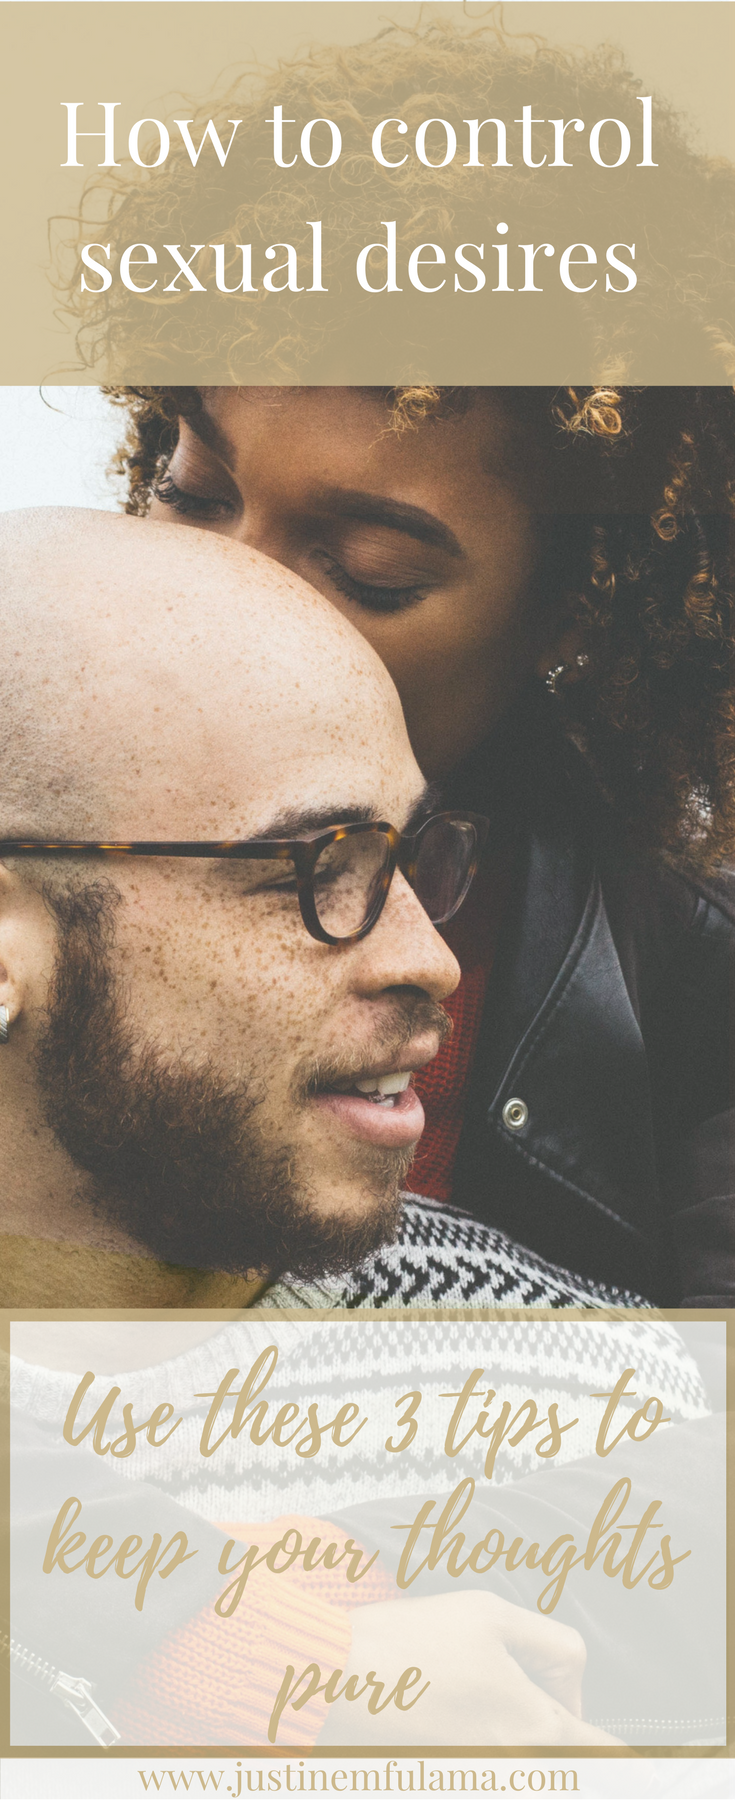 The black christian single guide to dating and sexuality